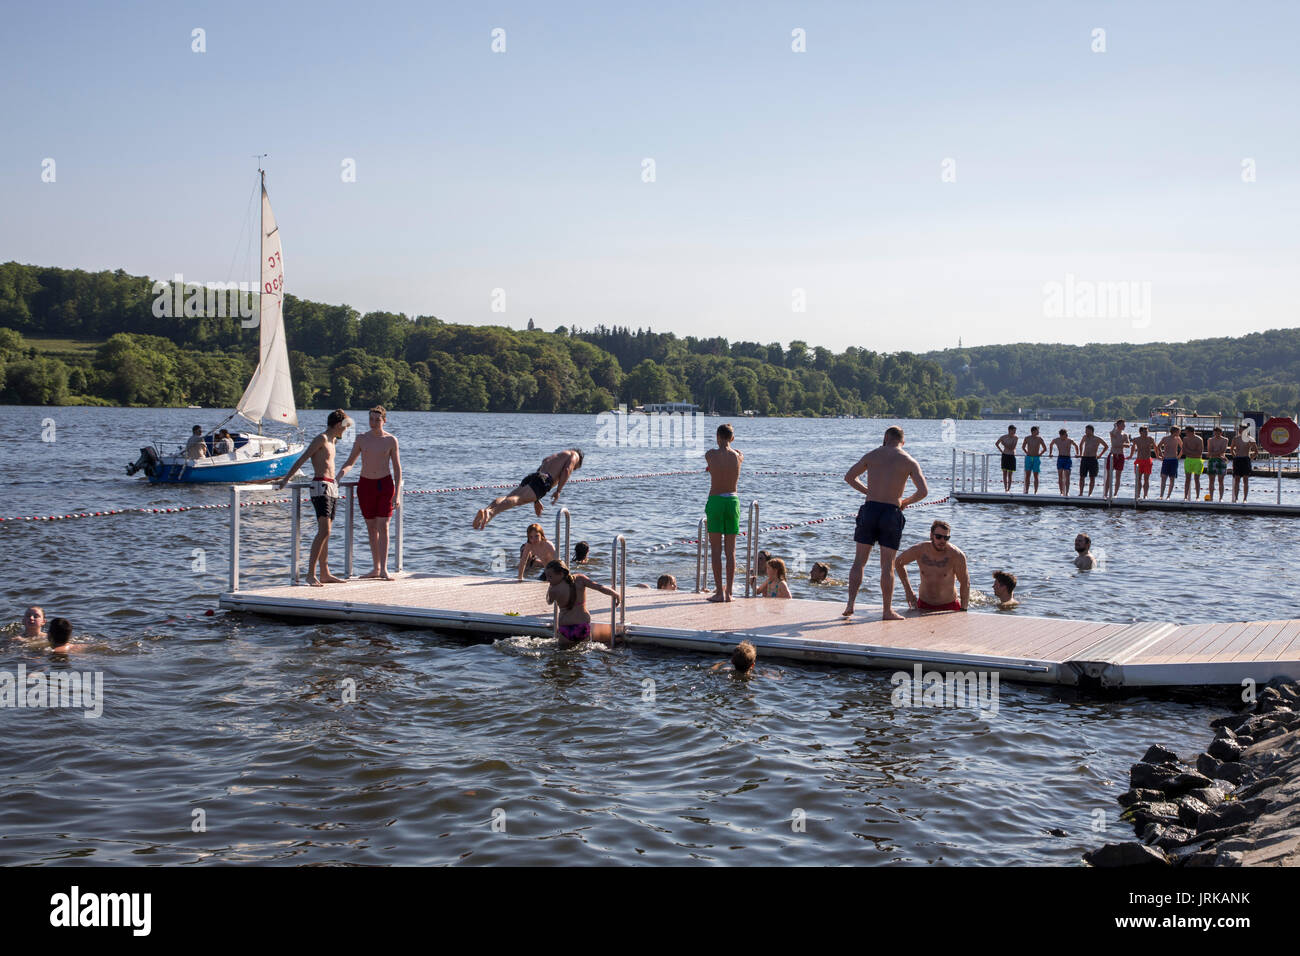 Floating Swimming Pool In River Stock Photos Floating Swimming Pool In River Stock Images Alamy